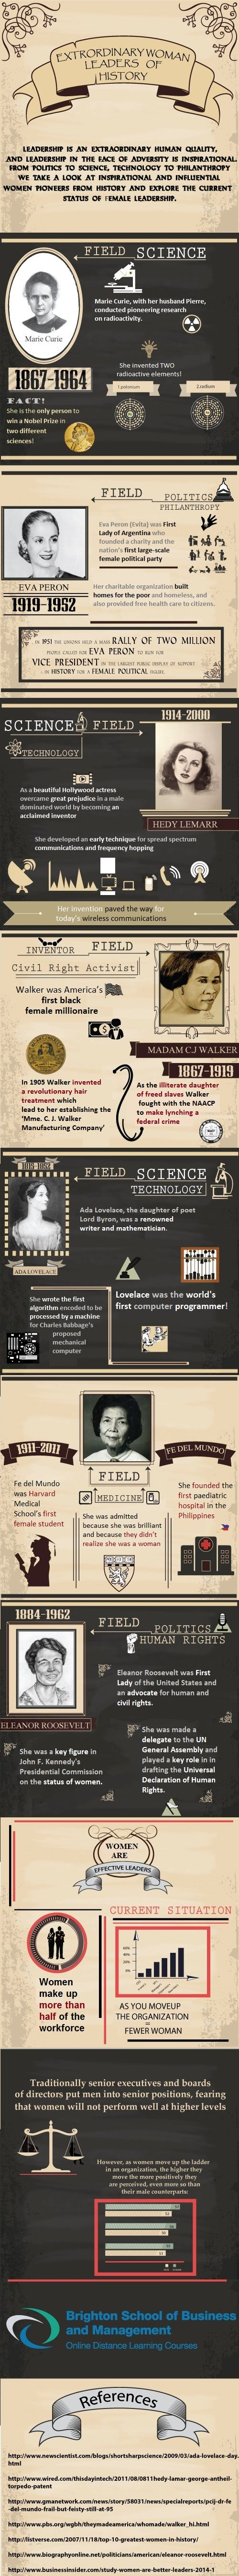 via Brighton School of Business & Management as the creator http://www.brightonsbm.com/management-courses/diploma-management-studies.php   http://www.brightonsbm.com/infographics/Outstanding-Female-Leaders.jpg